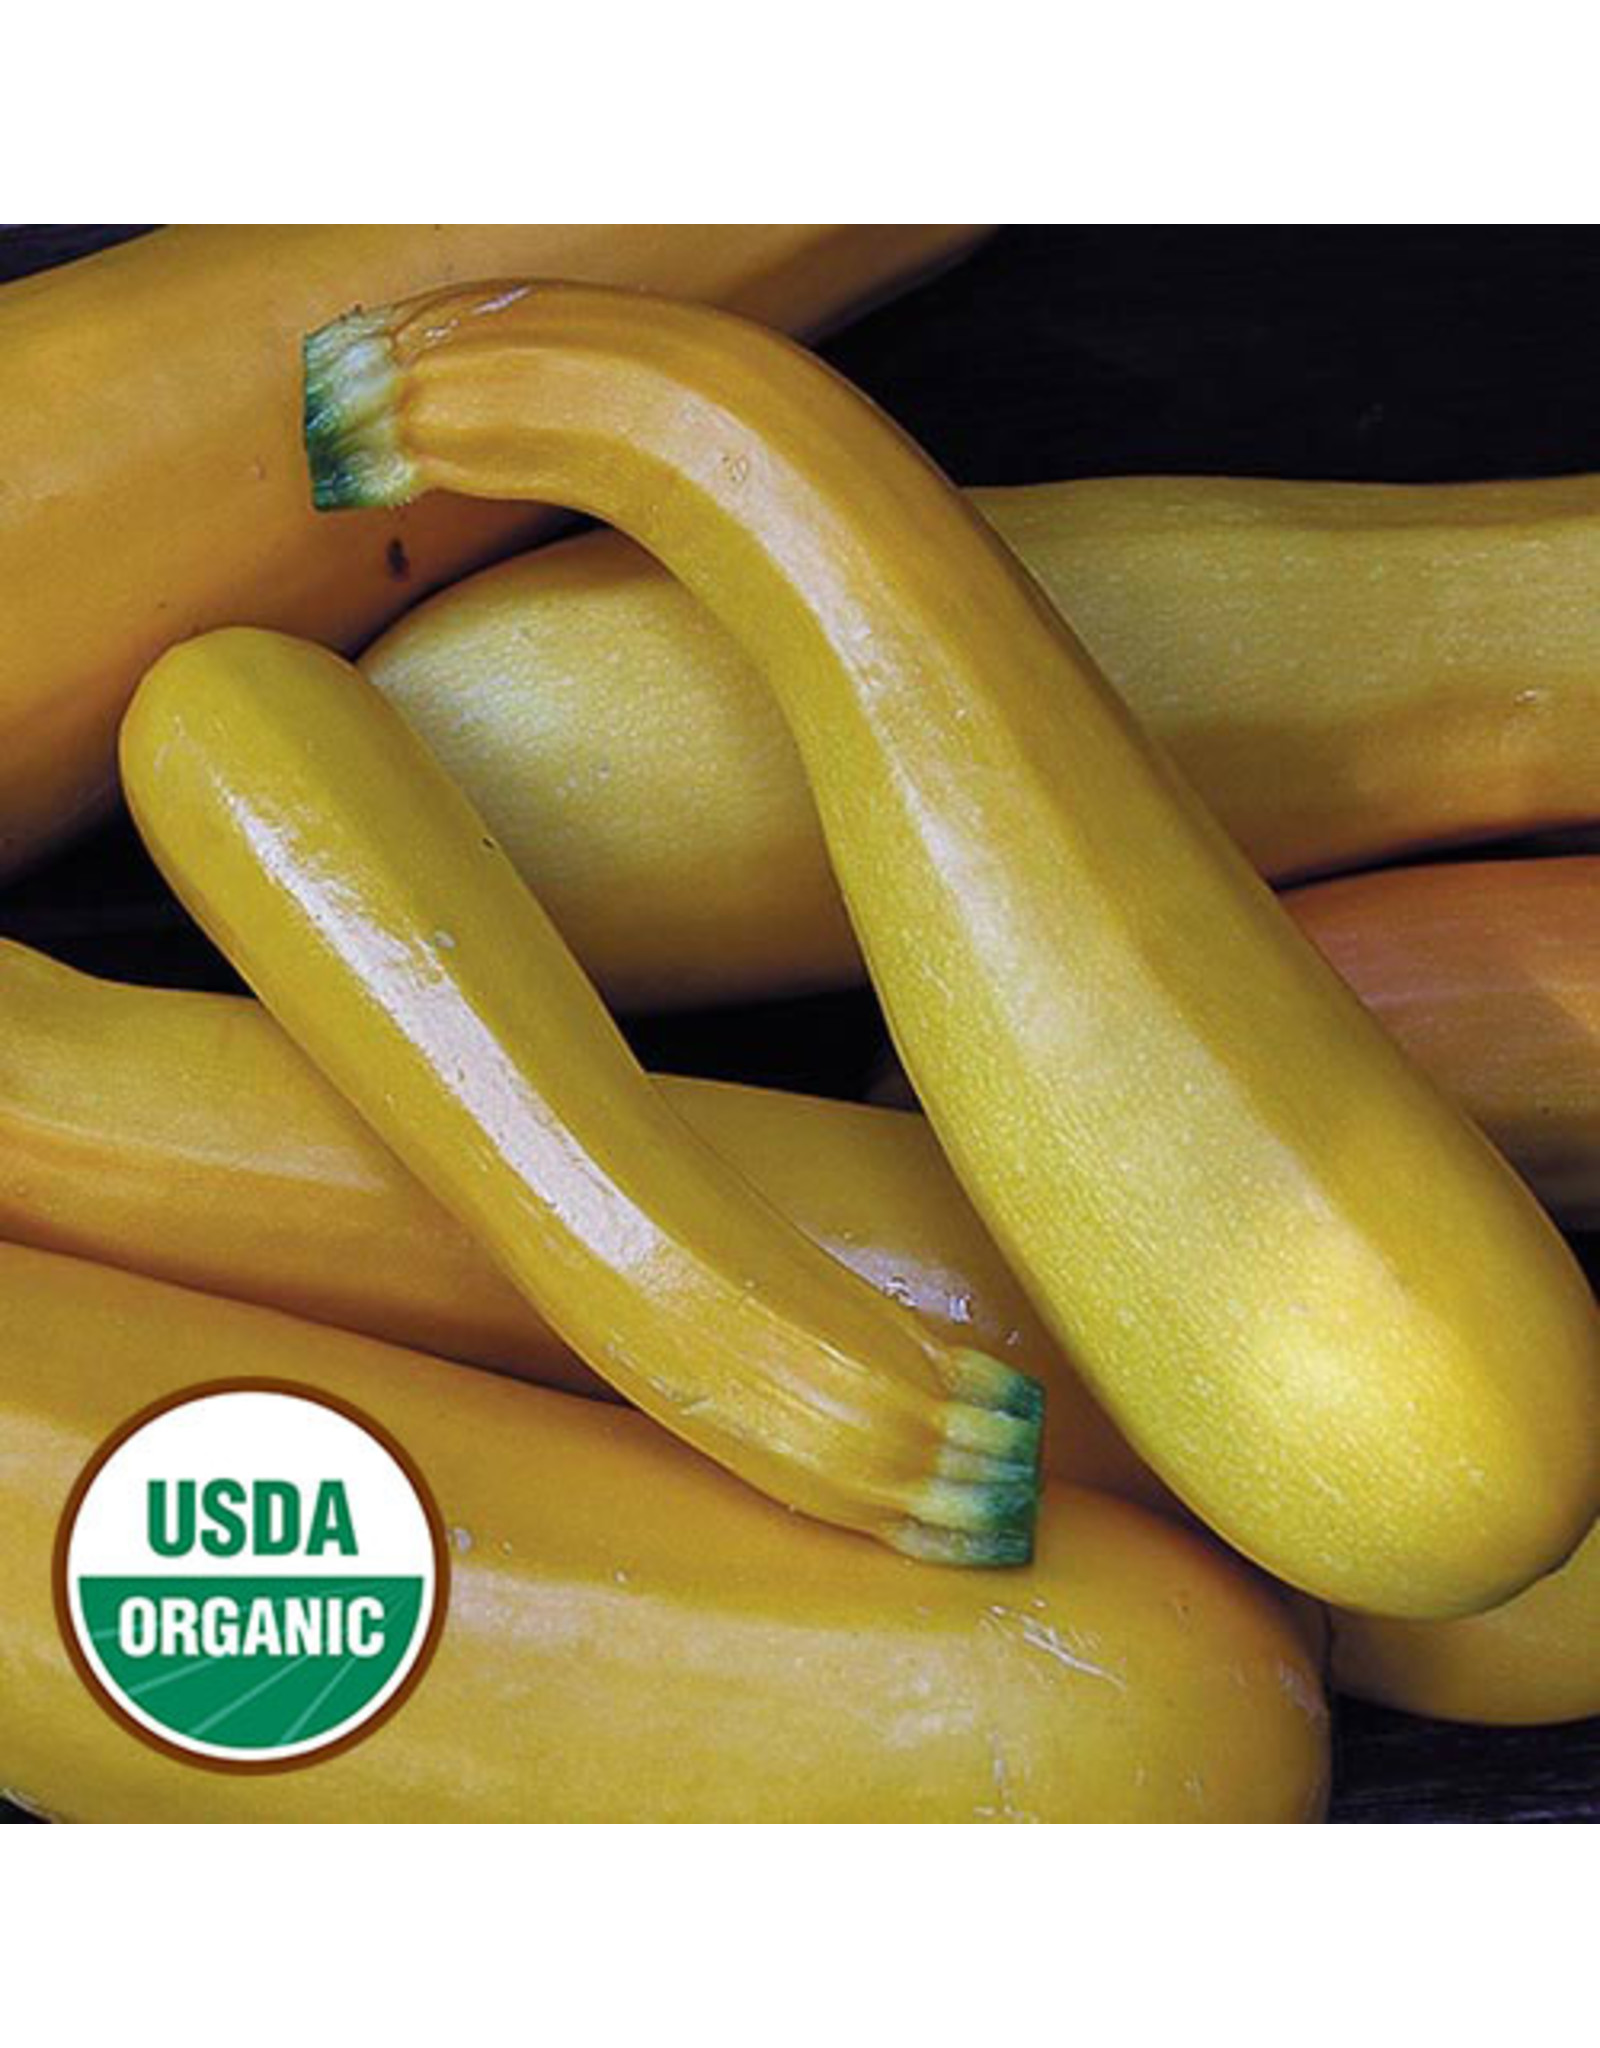 Seed Savers Squash - Golden Zucchini